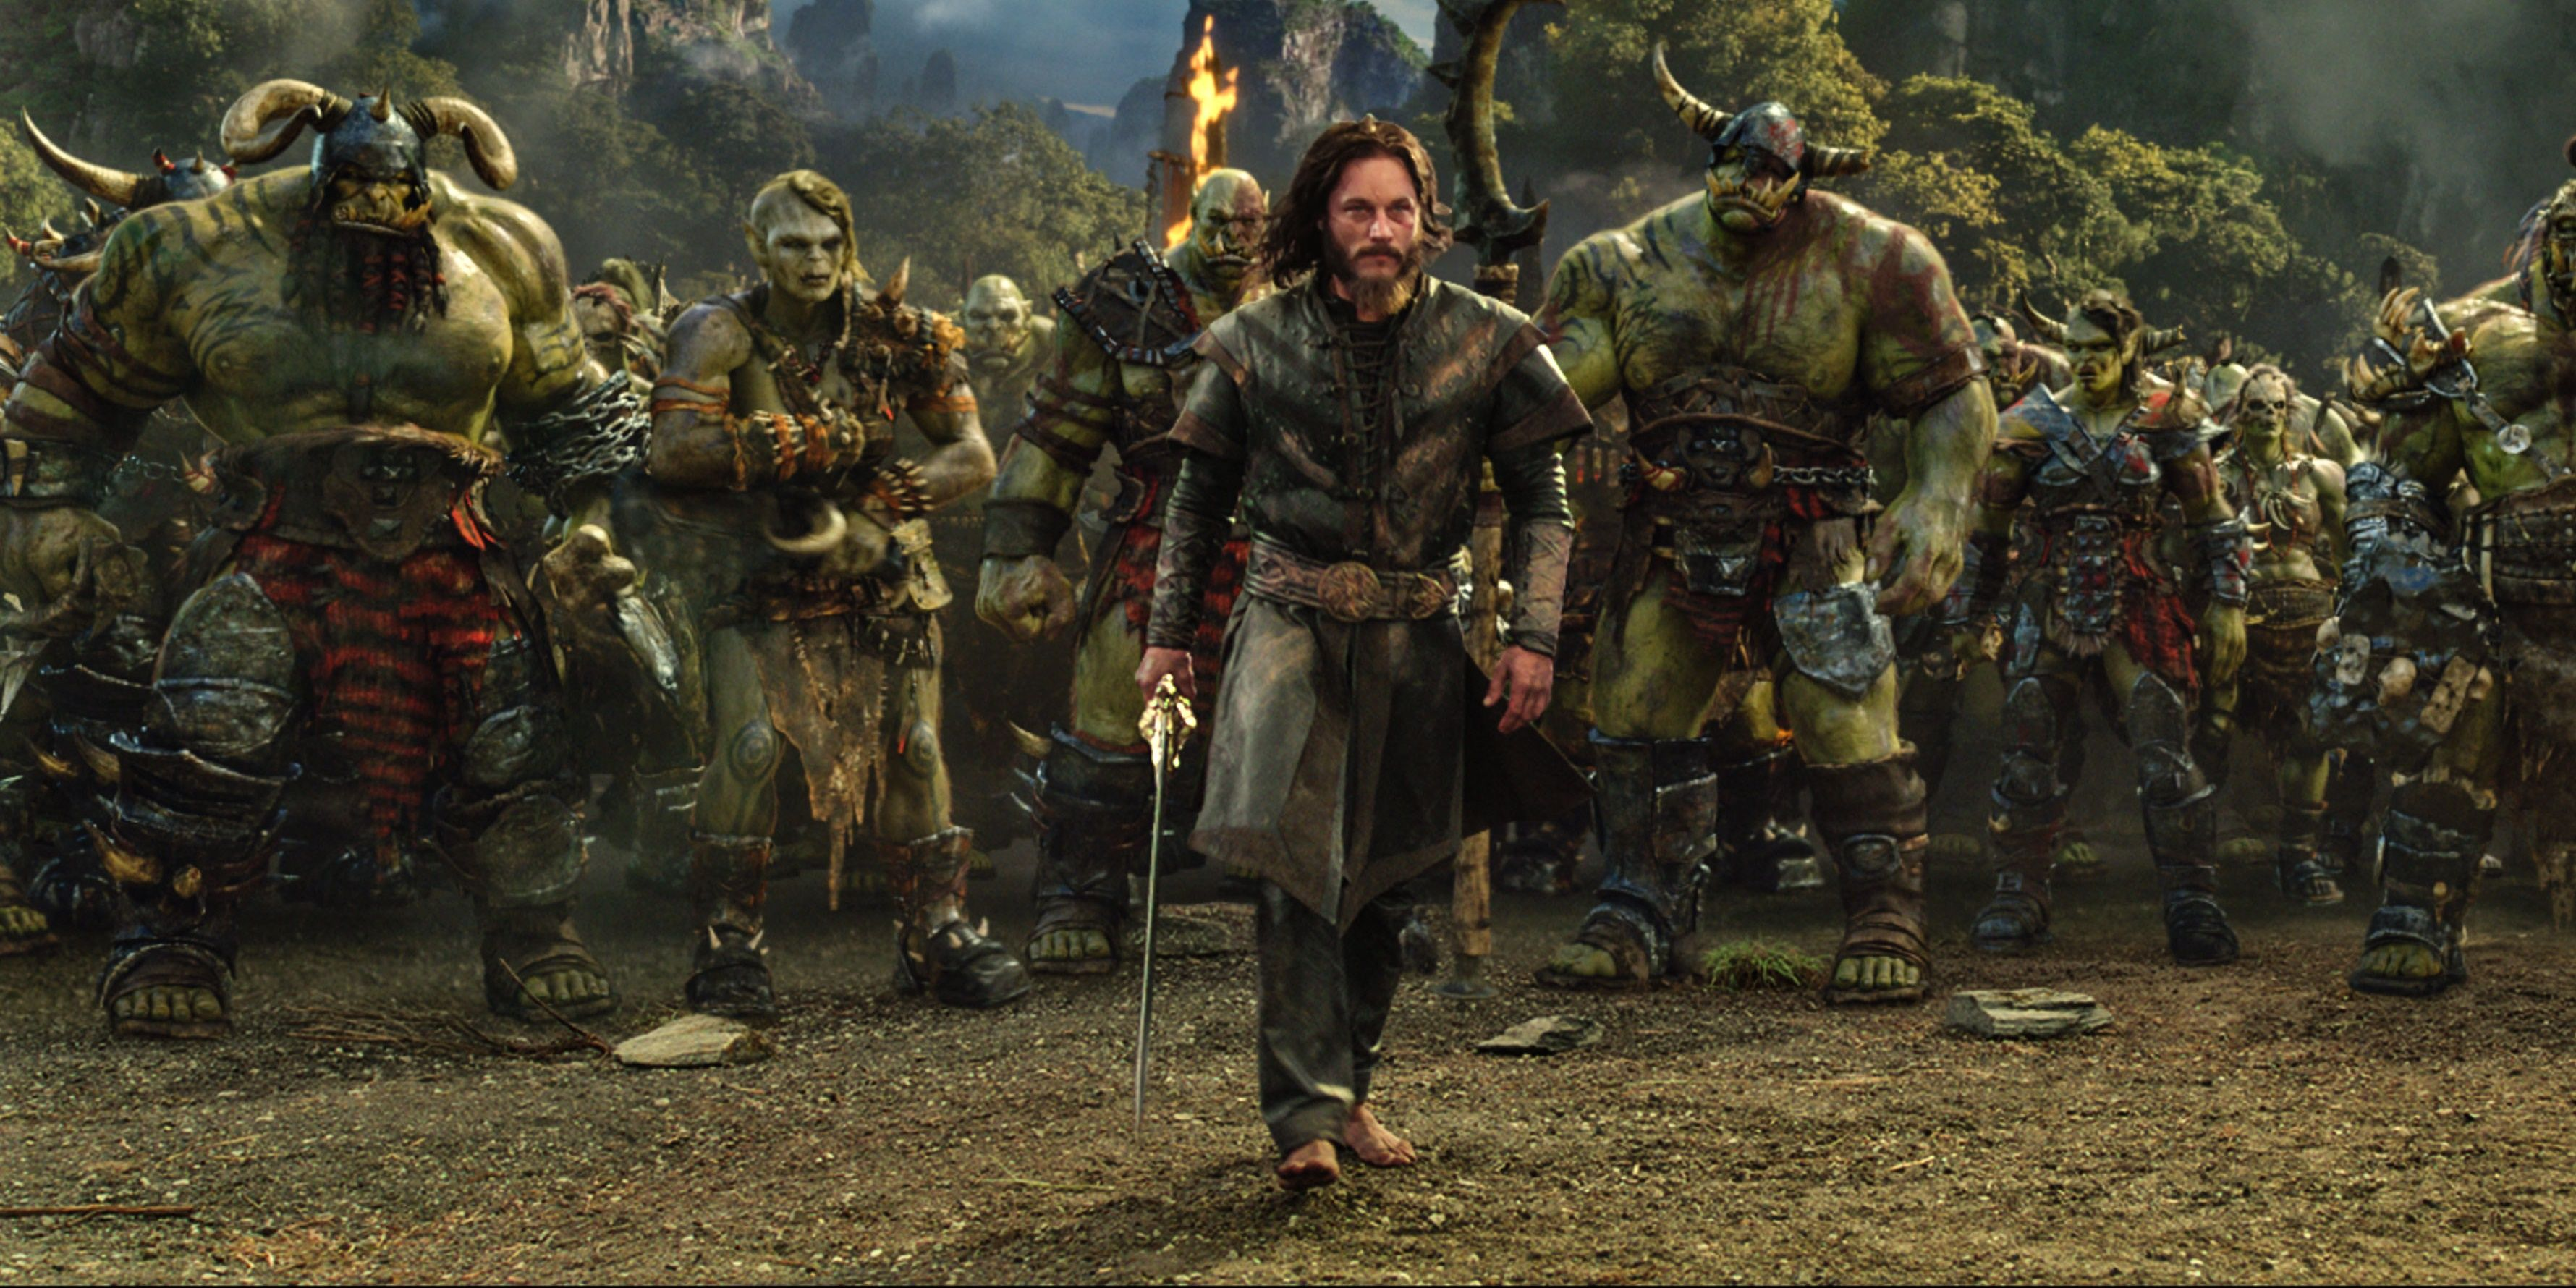 Warcraft Movie Anduin and Orcs Warcraft Director Has Conflicting Feelings Towards Movie